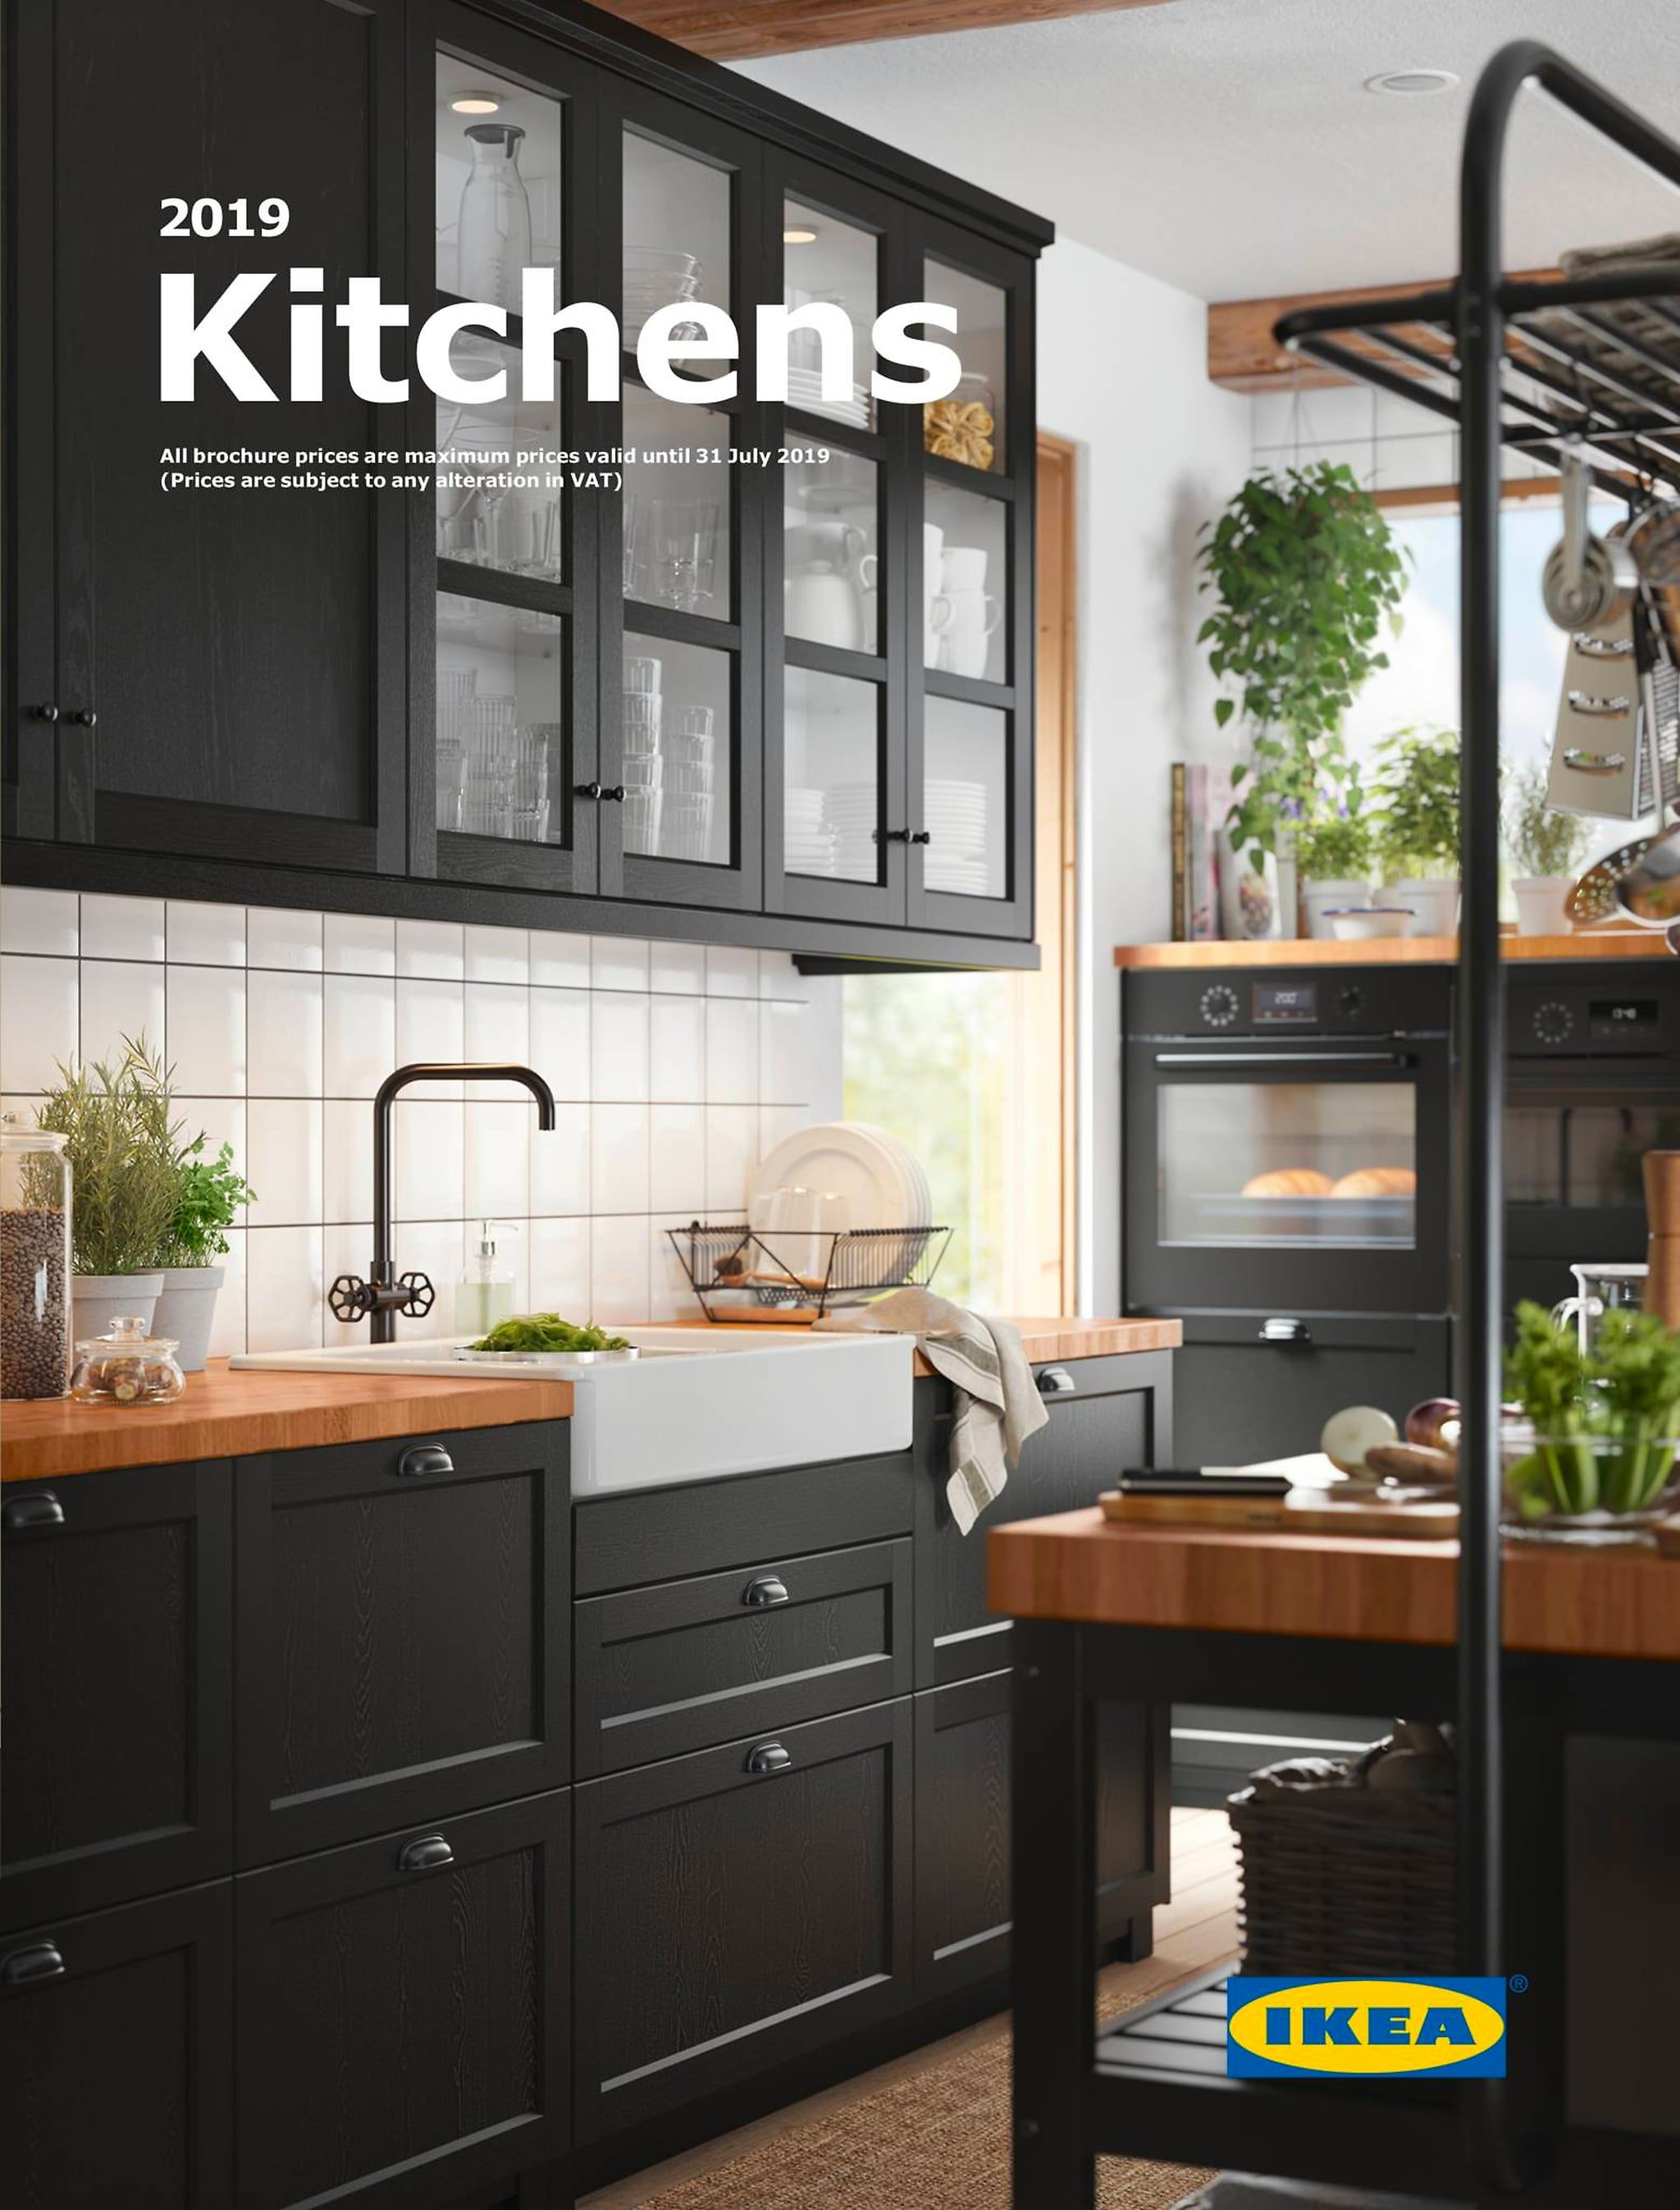 Ikea 2019 Catalogue Pdf Concept The Ikea 2019 Catalogue Pdf Performance Kitchen Design Kitchen Renovation Kitchen Interior